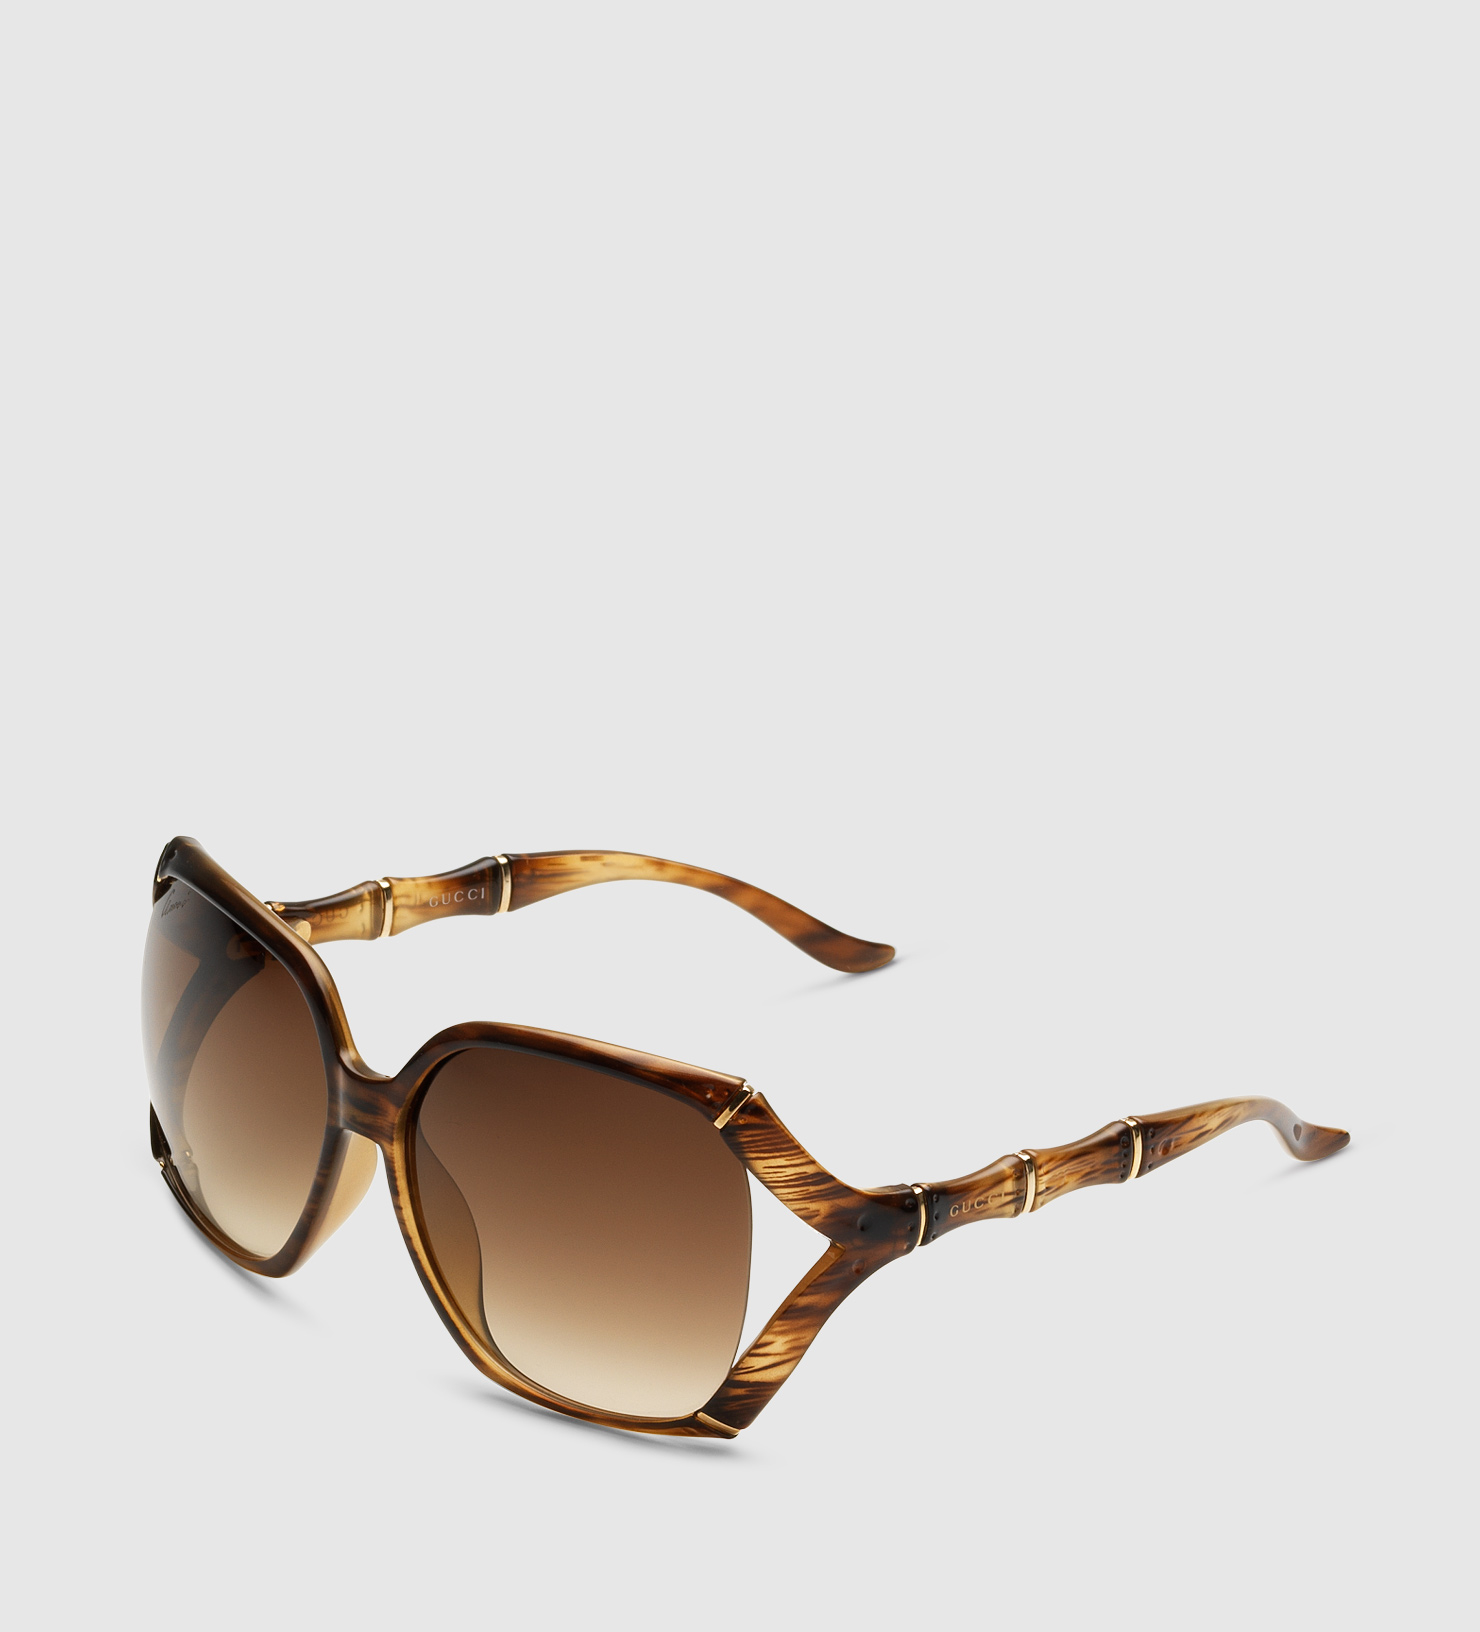 Lyst - Gucci Square Sunglasses With Bamboo Effect in Natural for Men d252785e0603